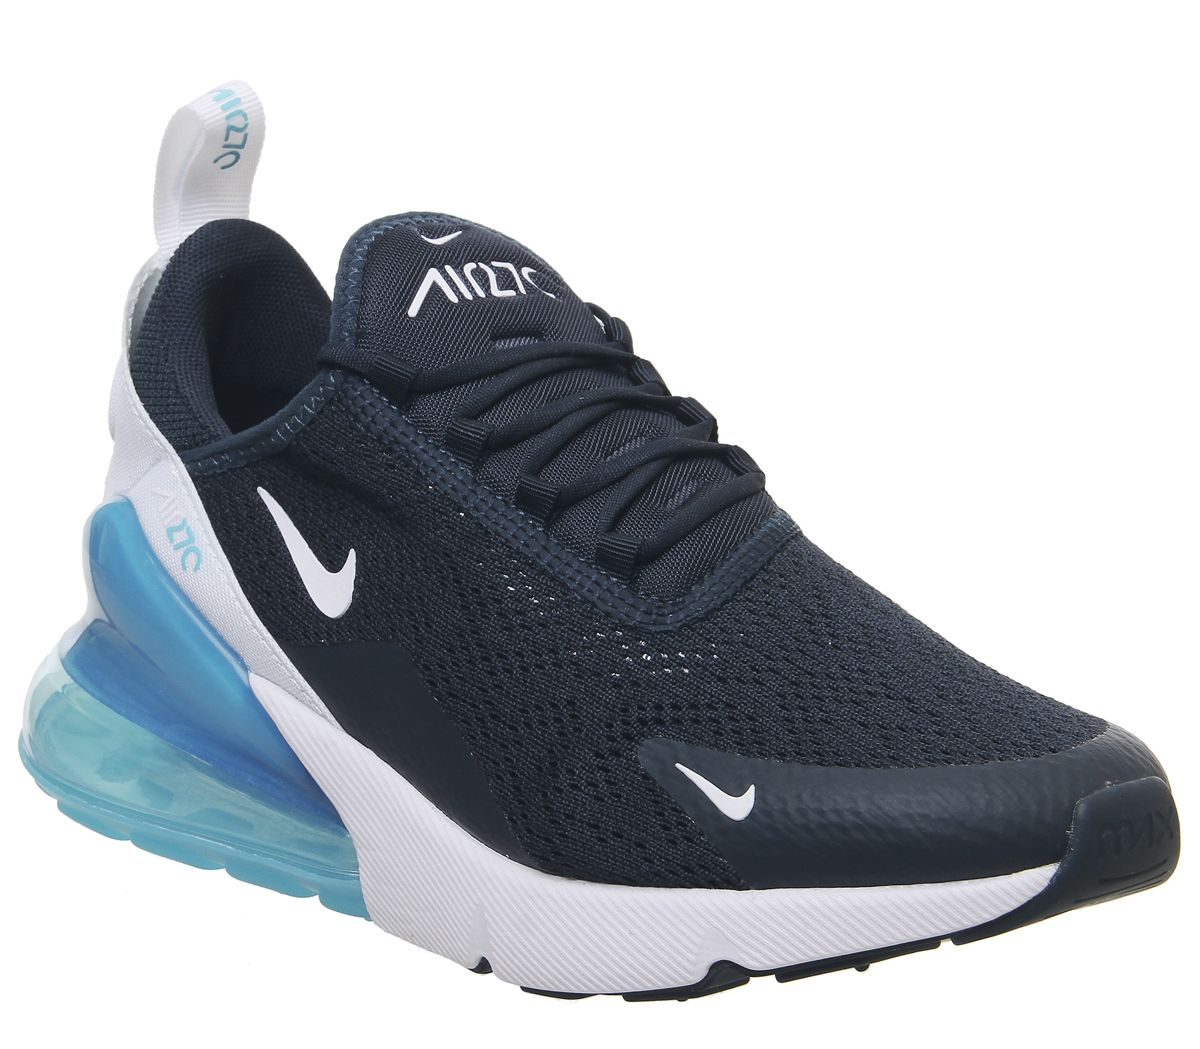 separation shoes f9f26 0bead Nike Air Max 270 Trainers Armory Navy White Blue Force White ...